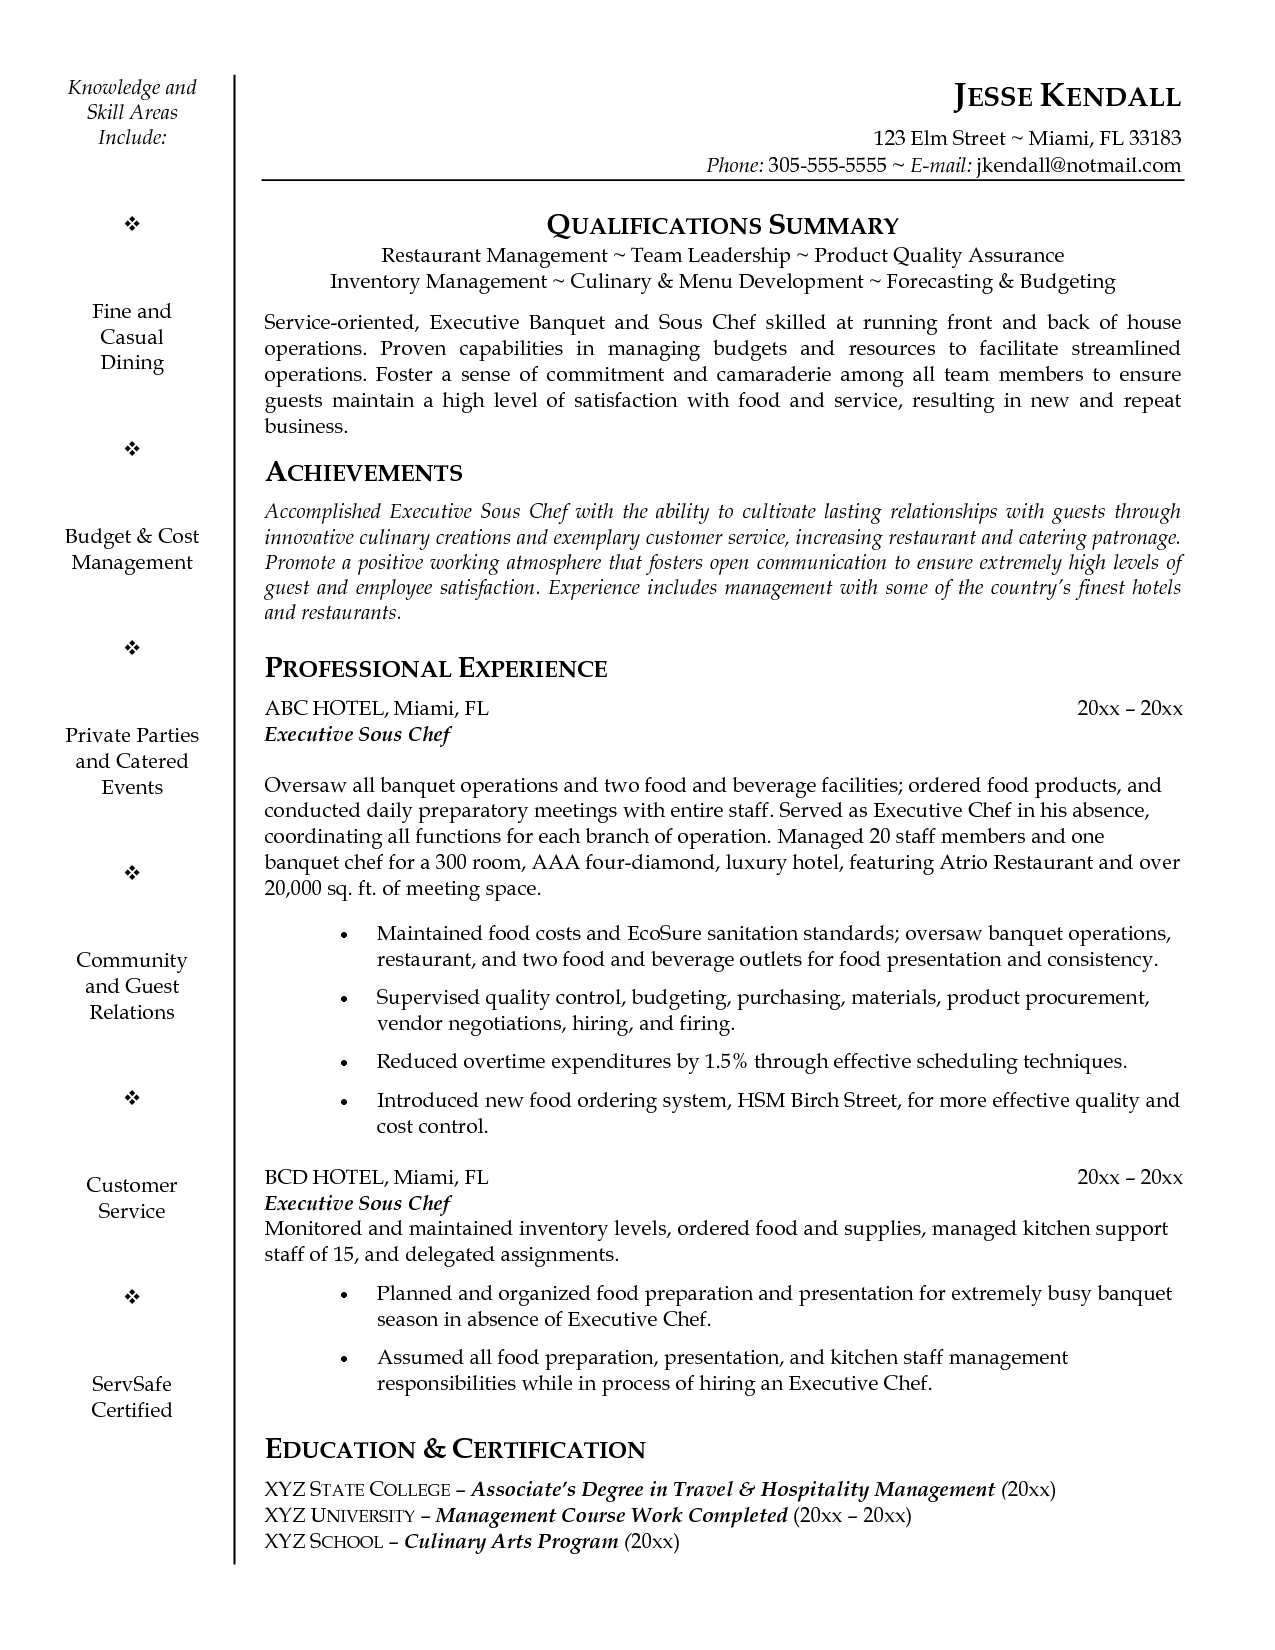 Chef Resume Sample Sous Chef Resume Examples  Httpwwwjobresumewebsitesouschef